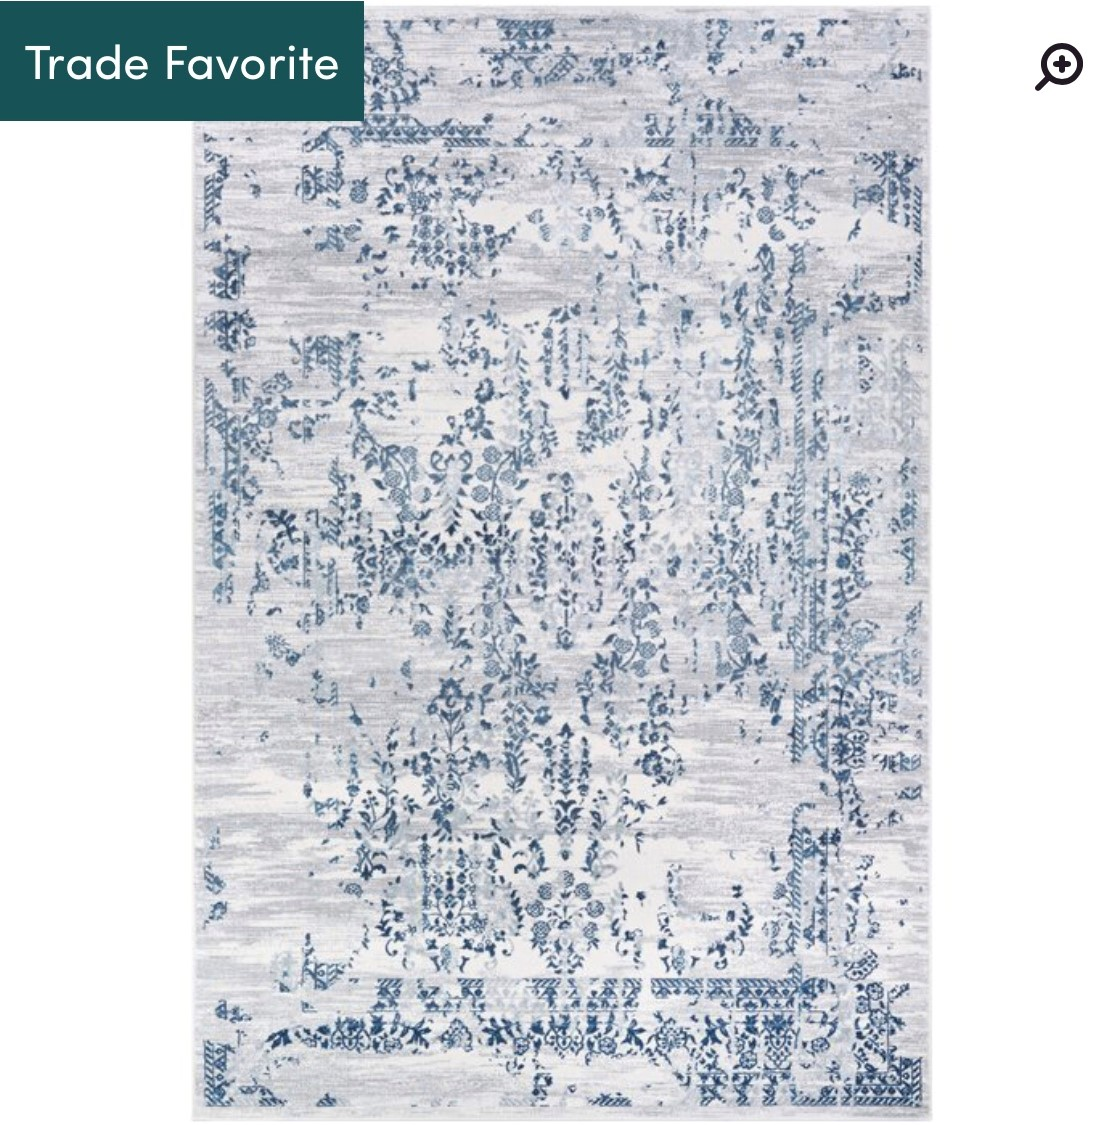 Jake Steele Blue Rug (Cream, light and medium gray, and navy) This rug is in my living room. -